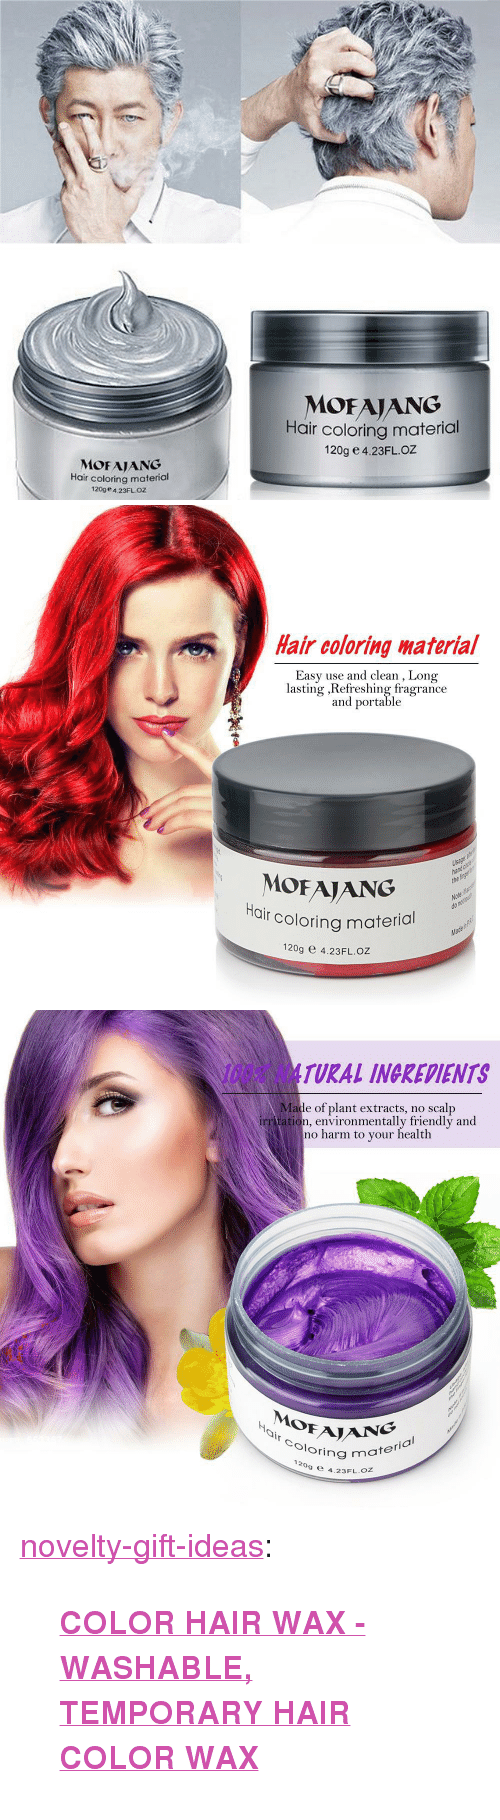 """Anaconda, Tumblr, and Blog: MOFAIANG  Hair coloring material  120g e 4.23FLOZ  MOFAJANG  Hair coloring material  120ge 4.23FLOZ   Hair coloring啭aterial  Easy use and clean , Long  lasting ,Refreshing fragrance  and portable  Usage  ha  the  MOFAJANG  r coloring material  Ha  Note  do  Ma  120g e 4.23FL.OZ   100% NATURAL INGREDIENTS  Made of plant extracts, no scalp  irr tation, environmentally friendly and  no harm to your health  0  Oloring m  ½  NG  ring material  ,  9 e 4.23FL.oZ <p><a href=""""https://novelty-gift-ideas.tumblr.com/post/170243494438/color-hair-wax-washable-temporary-hair-color"""" class=""""tumblr_blog"""">novelty-gift-ideas</a>:</p><blockquote><p><b><a href=""""https://slangzteez.com/products/color-hair-wax"""">COLOR HAIR WAX - WASHABLE, TEMPORARY HAIR COLOR WAX</a></b></p></blockquote>"""